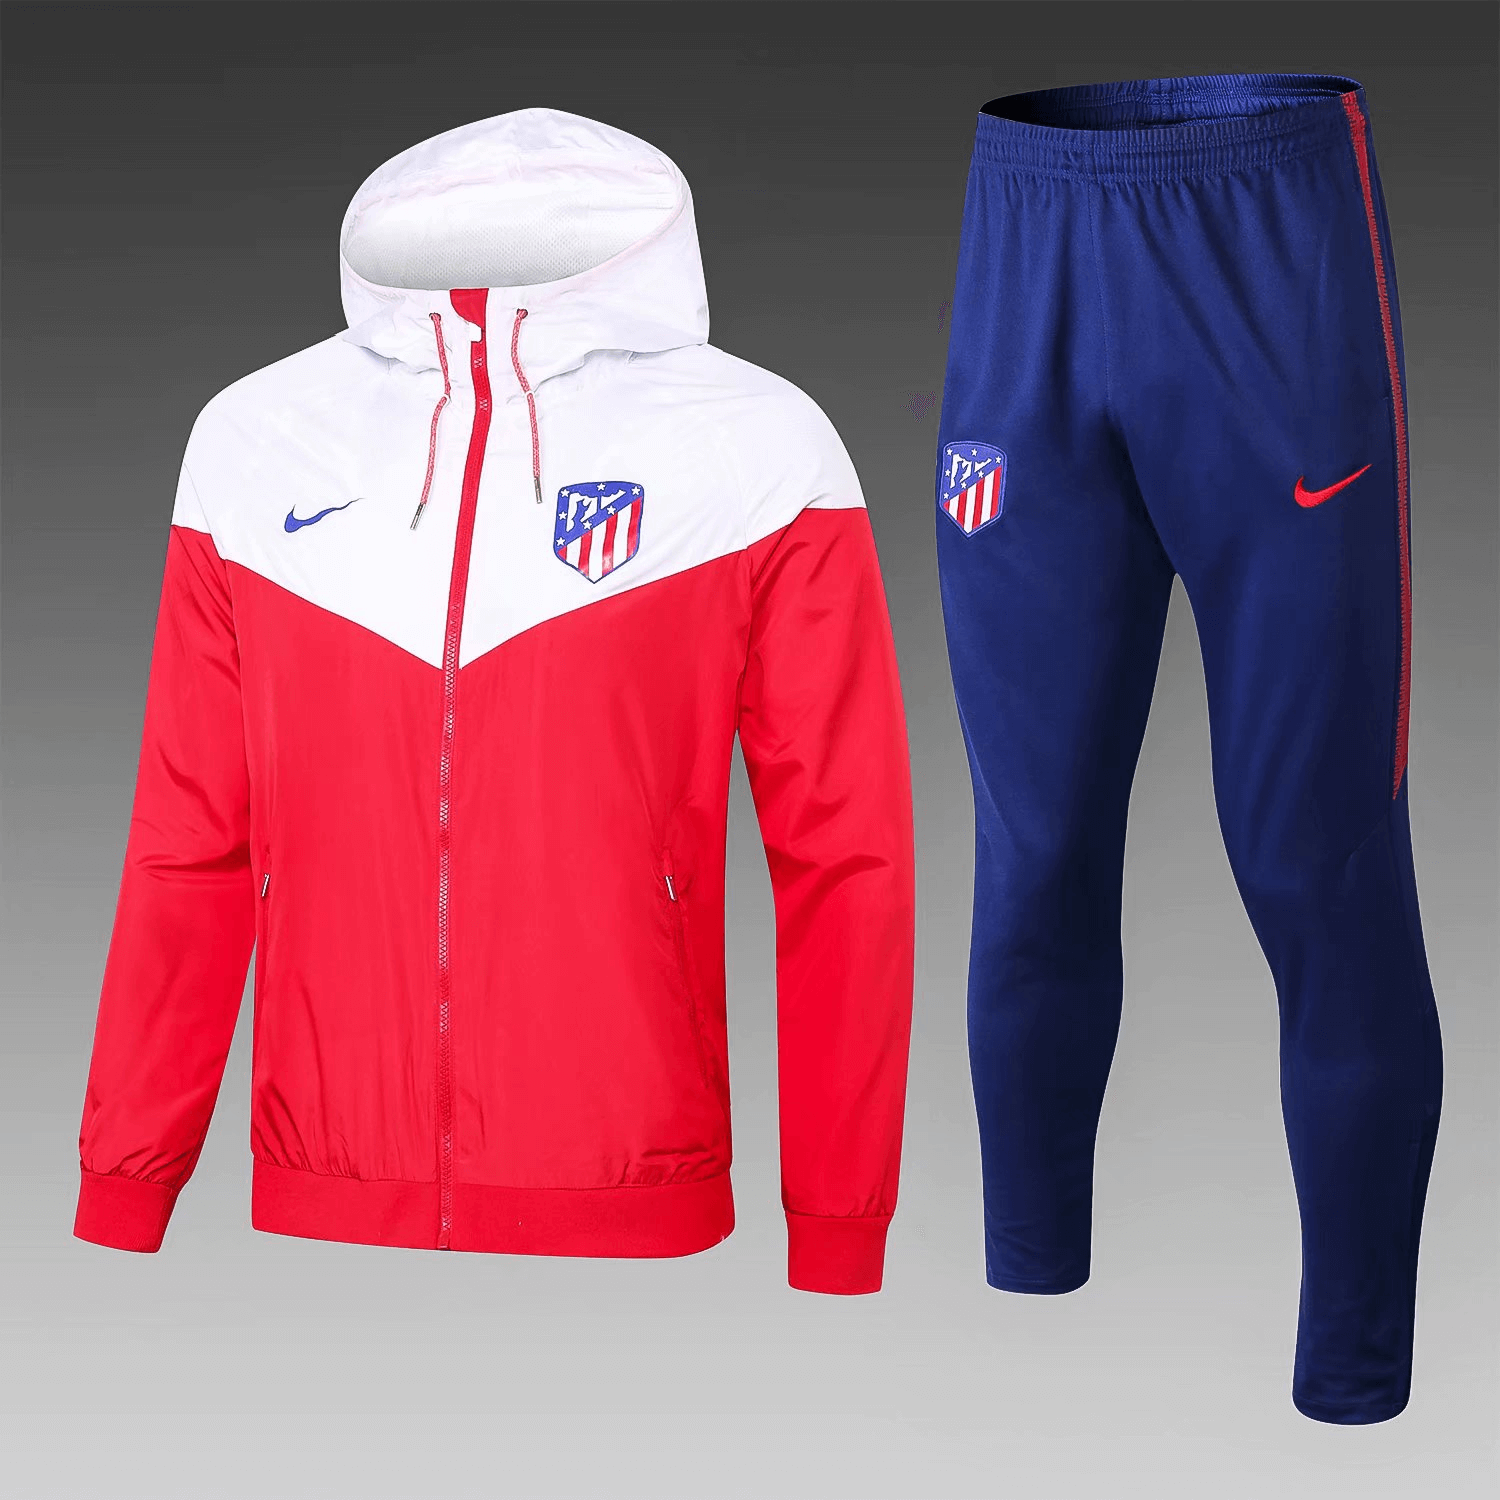 6dd68a6a6 Atletico Madrid 18 19 Red (with white) Hoodie Men Windbreaker Suit